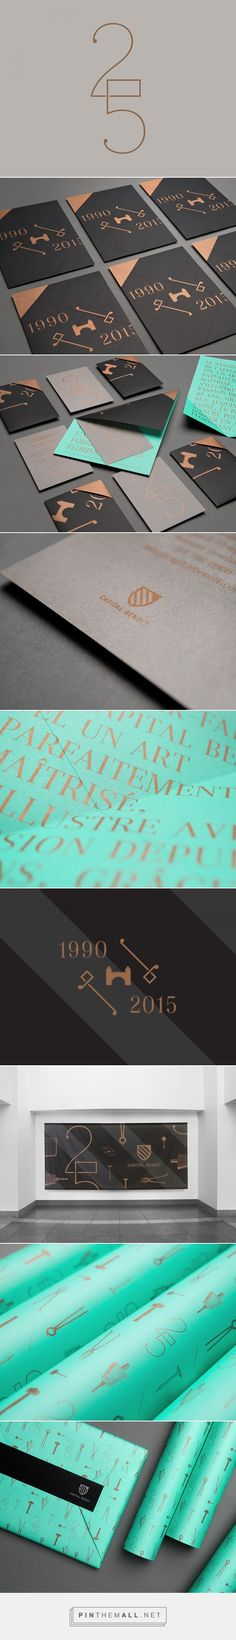 25th anniversary | Capital Benoit | lg2 | Fivestar Branding – Design and Branding Agency & Inspiration Gallery